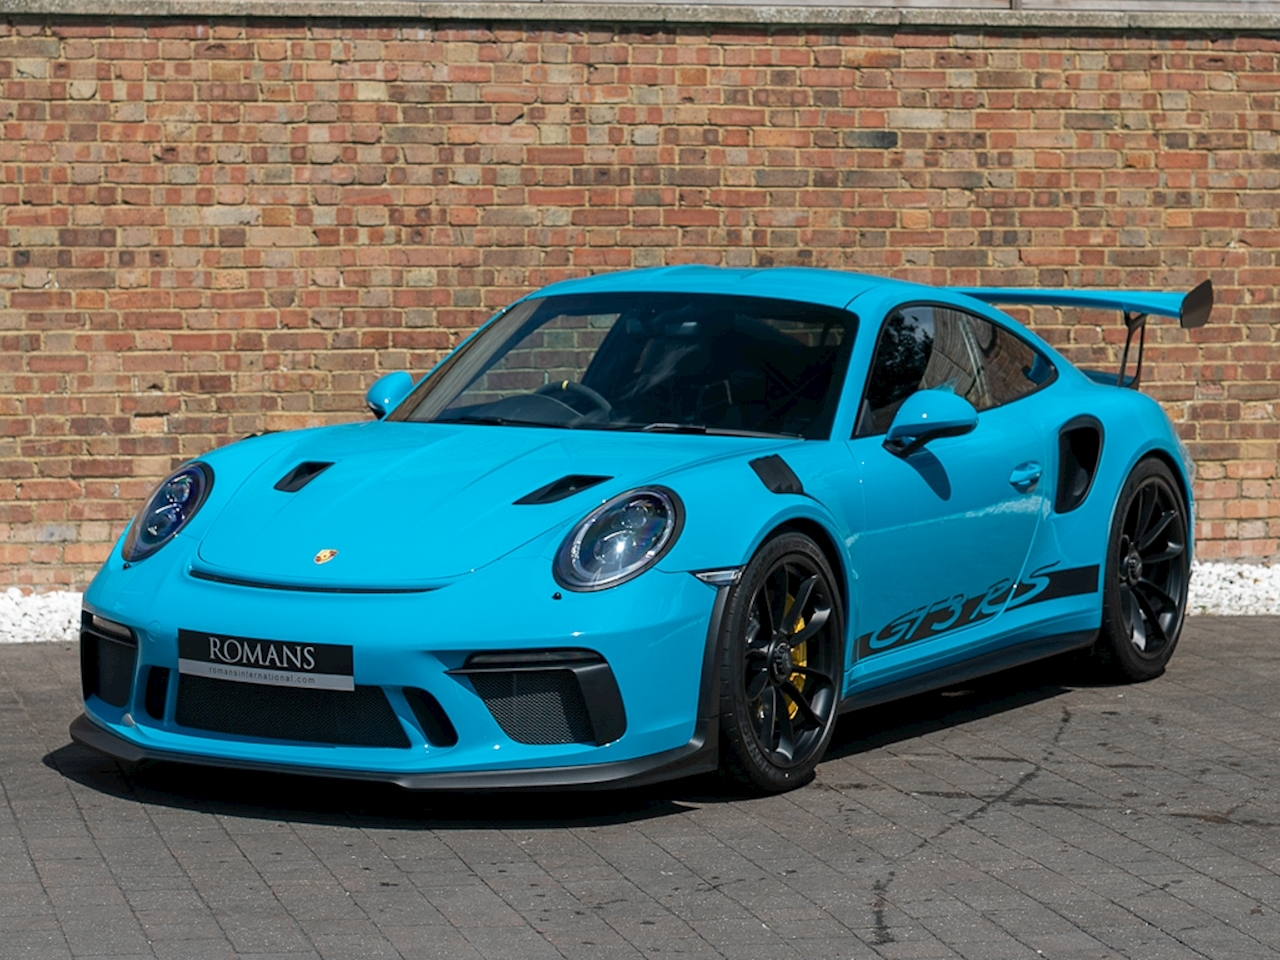 2018 used porsche 911 gt3 rs miami blue. Black Bedroom Furniture Sets. Home Design Ideas